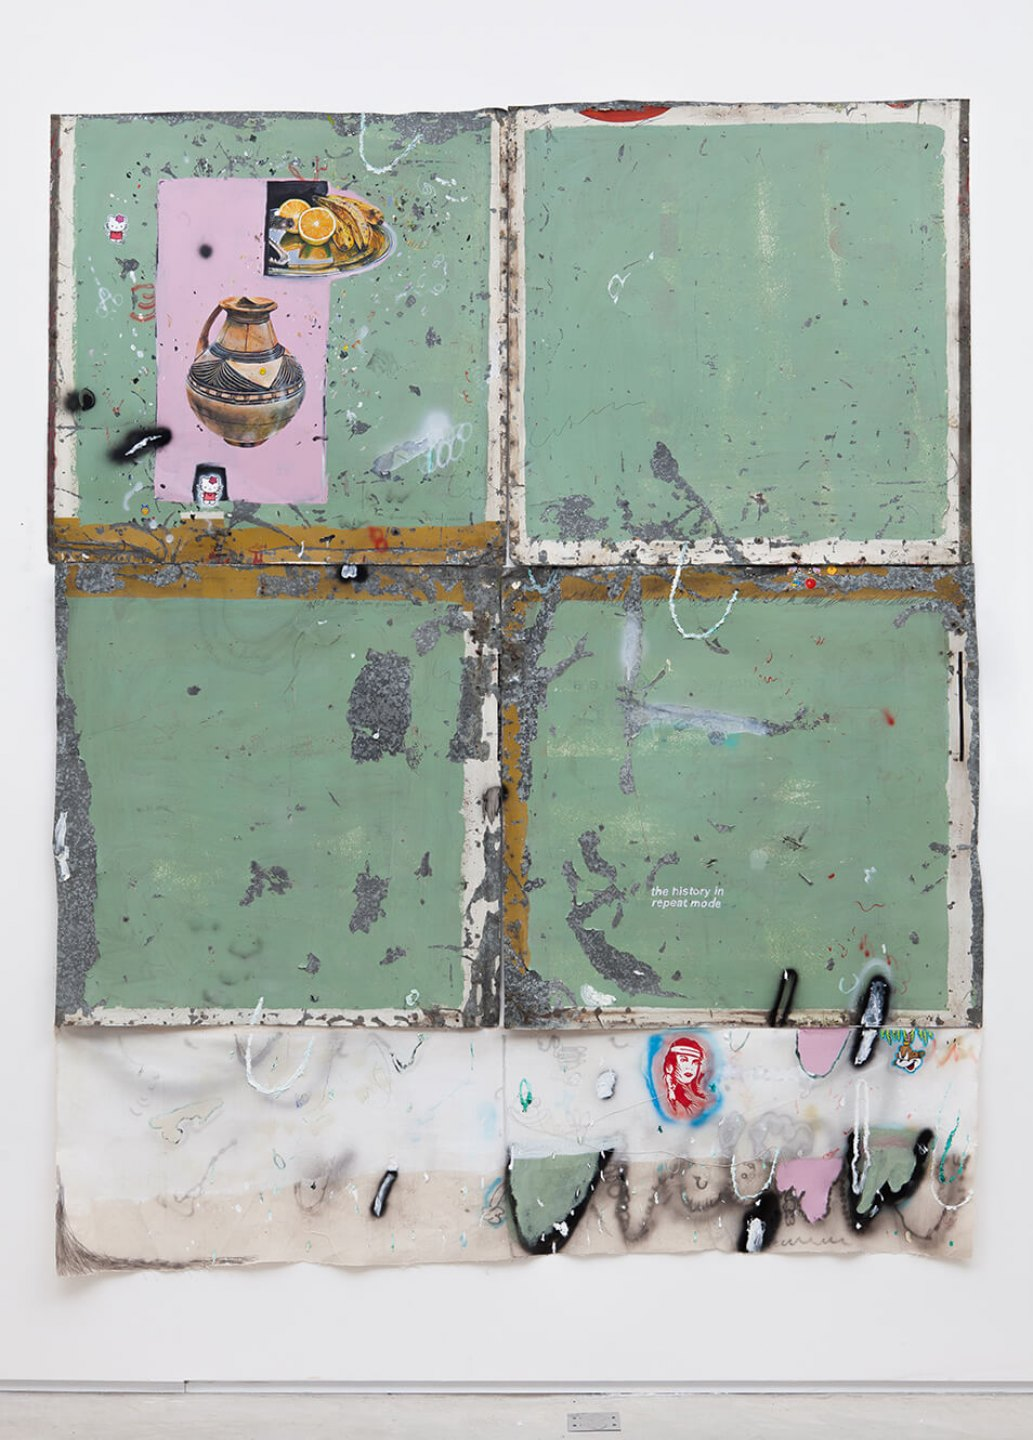 Paulo Nimer Pjota, <em>ETHOS Cruzados</em>, 2015, acrylic, oil, pen, pencil on iron plate, cotton, paper and concrete, 250 × 200 cm - Mendes Wood DM